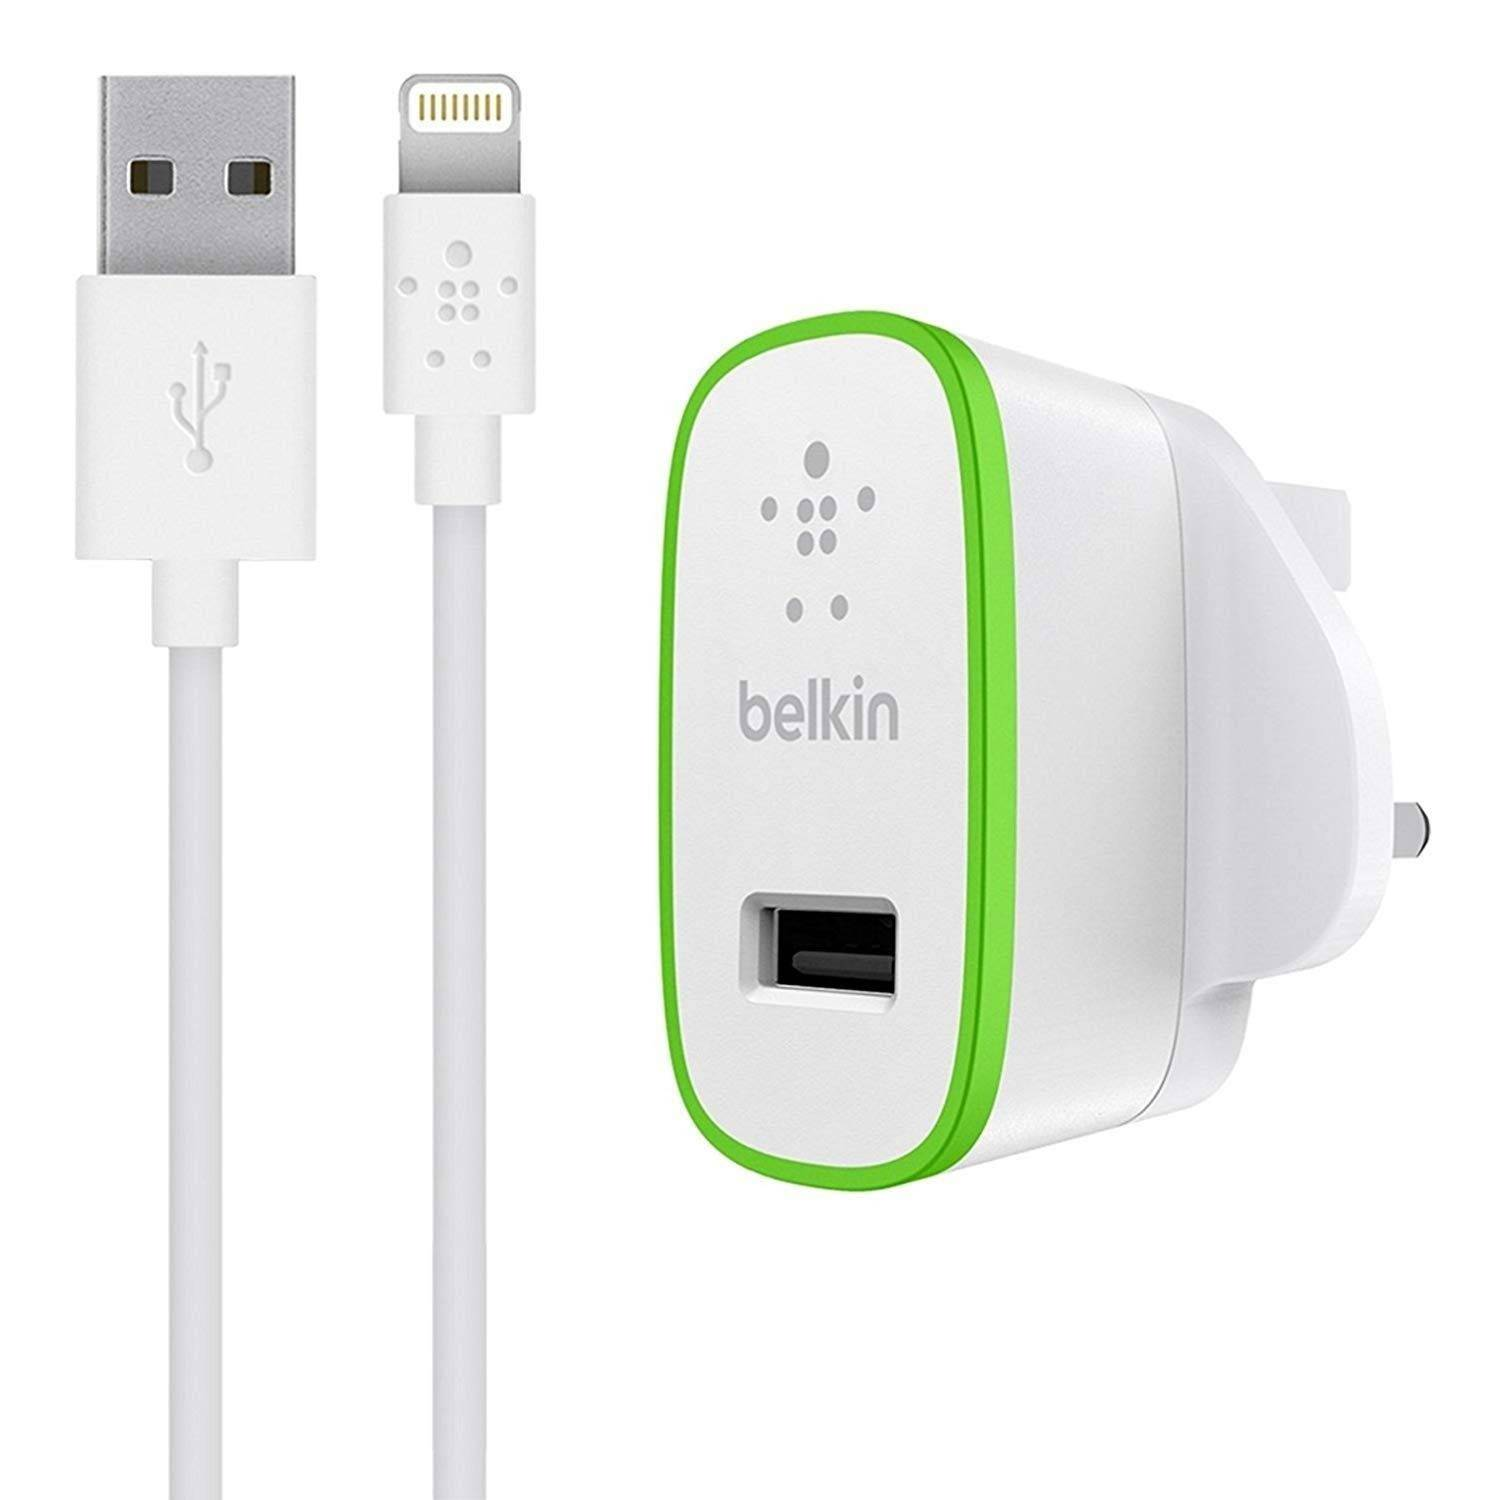 Belkin - Ultra Ultra-fast 2.4amp Usb Mains Charger EU With 1.2m Lightning Cable -BKN-F8J125VF04 White - 2071MALL